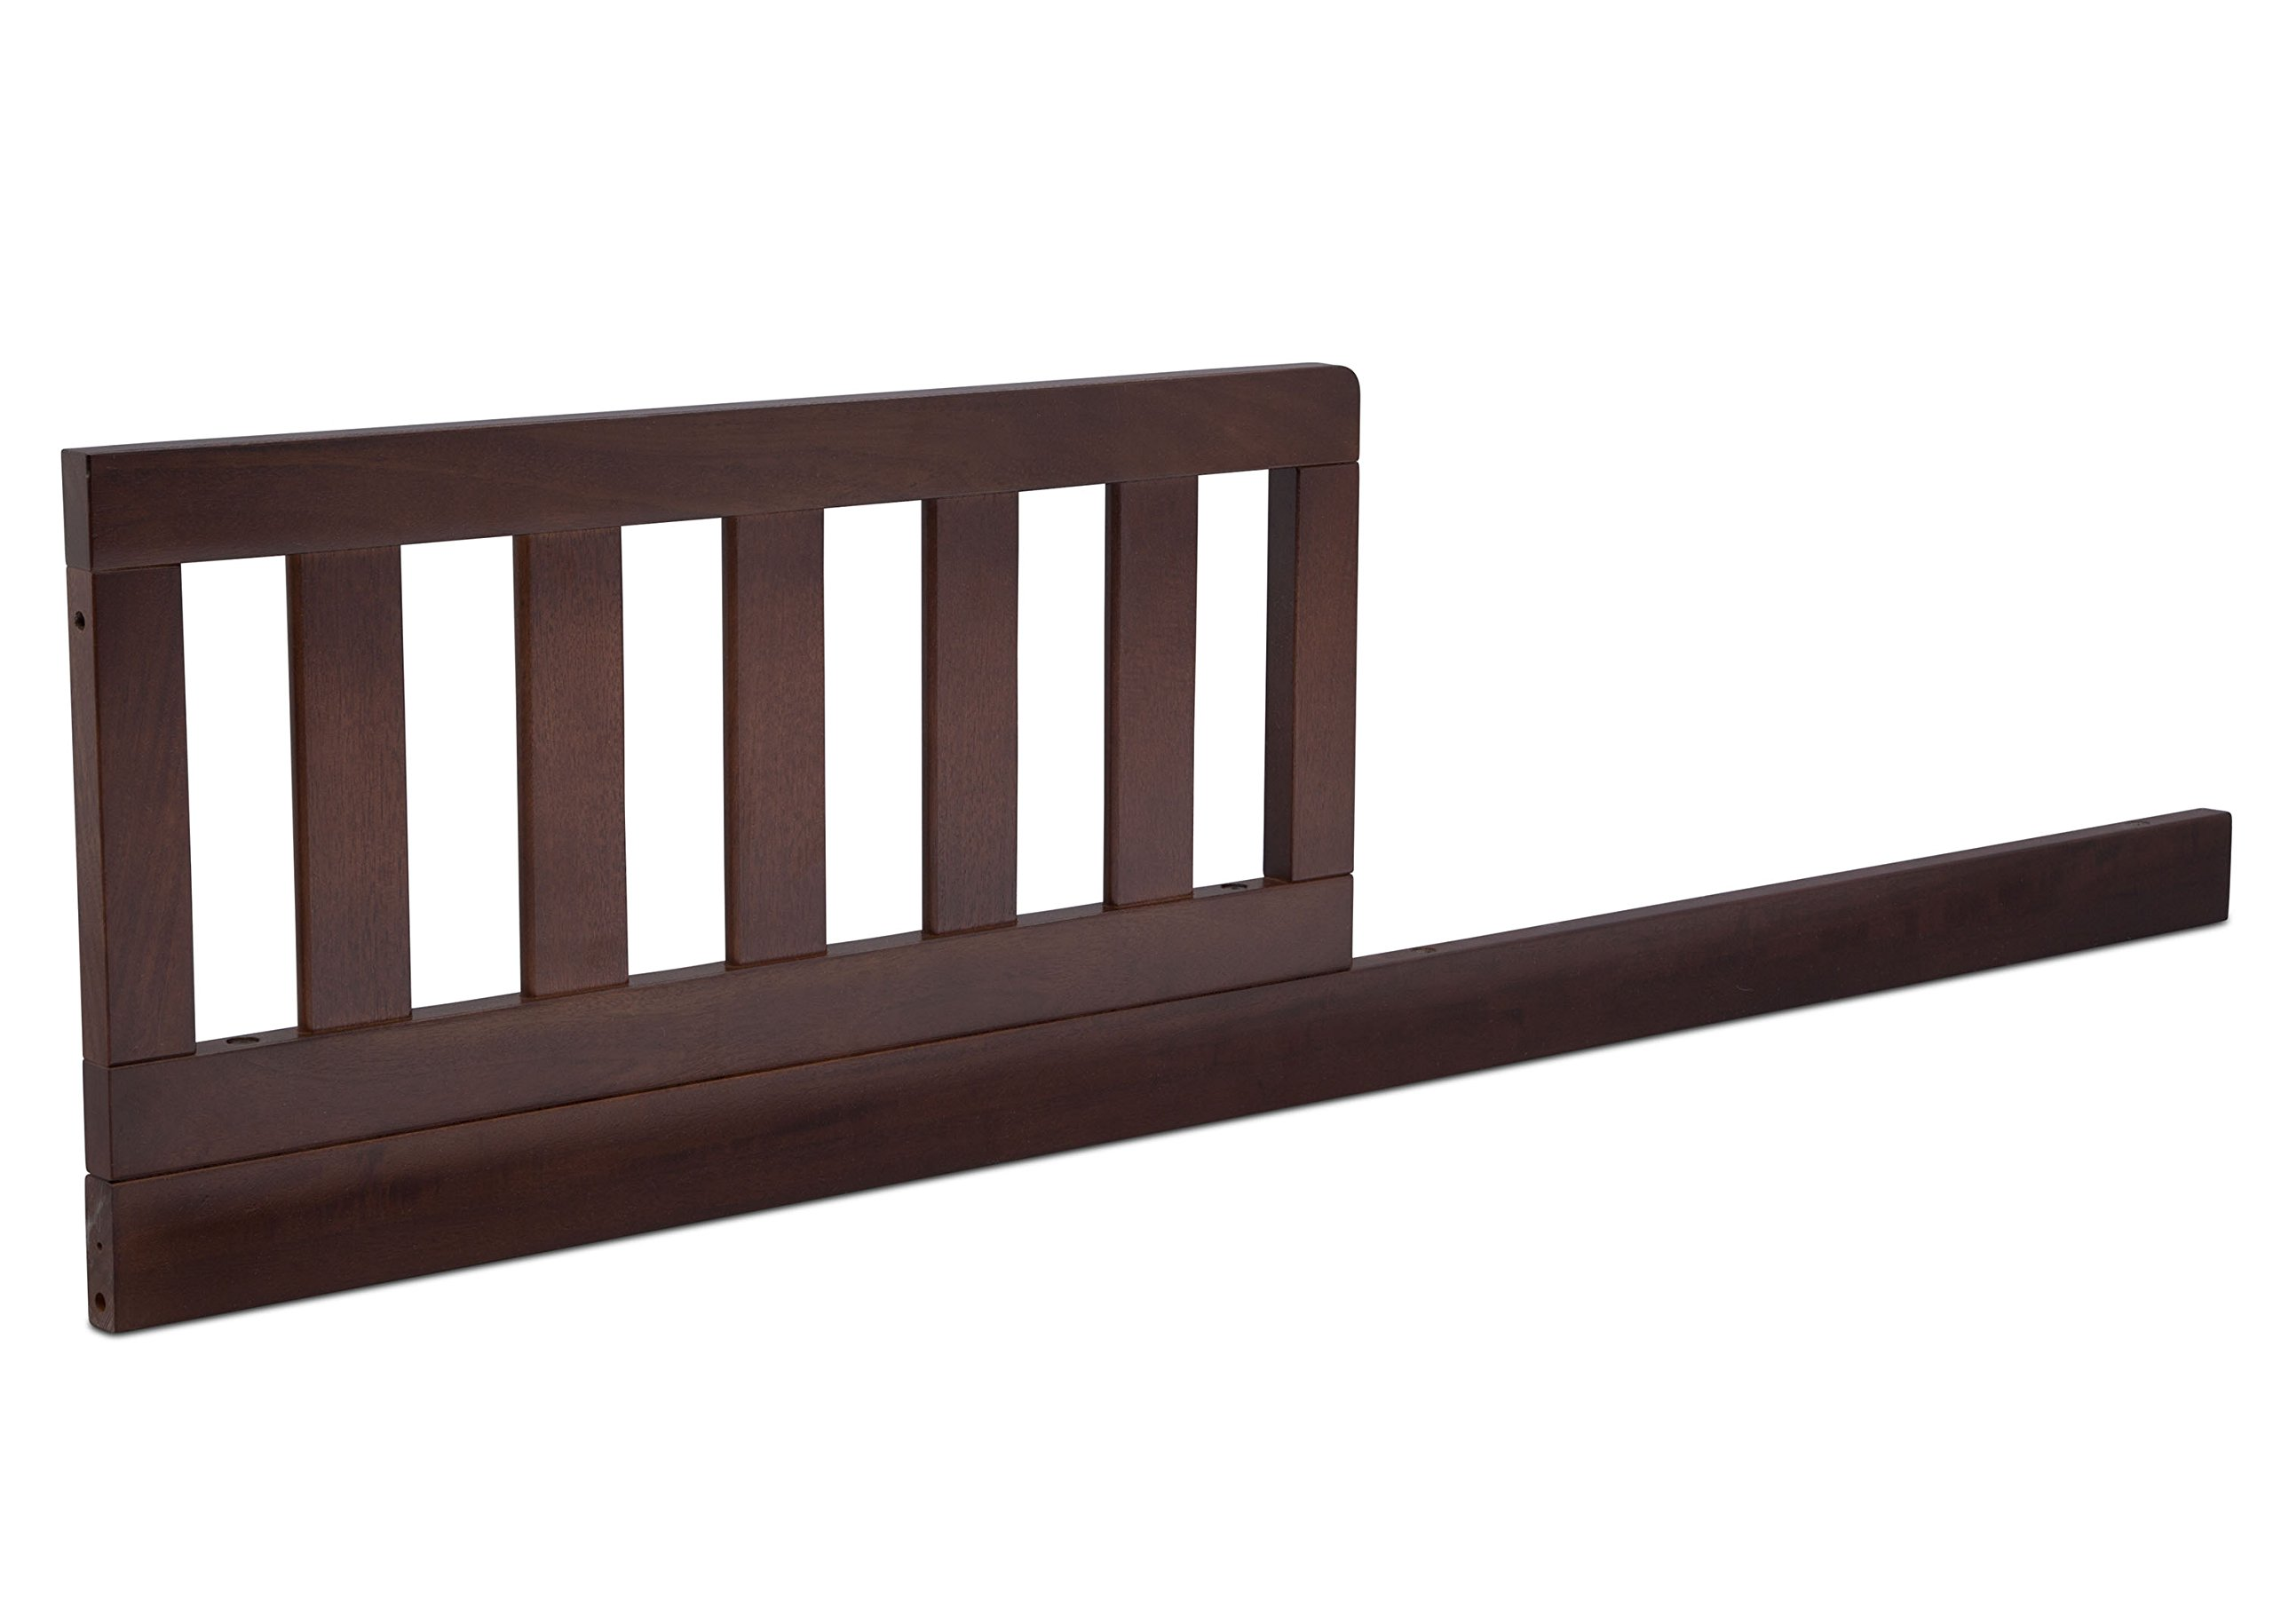 Serta Daybed/Toddler Guardrail Kit #707726, Walnut Espresso